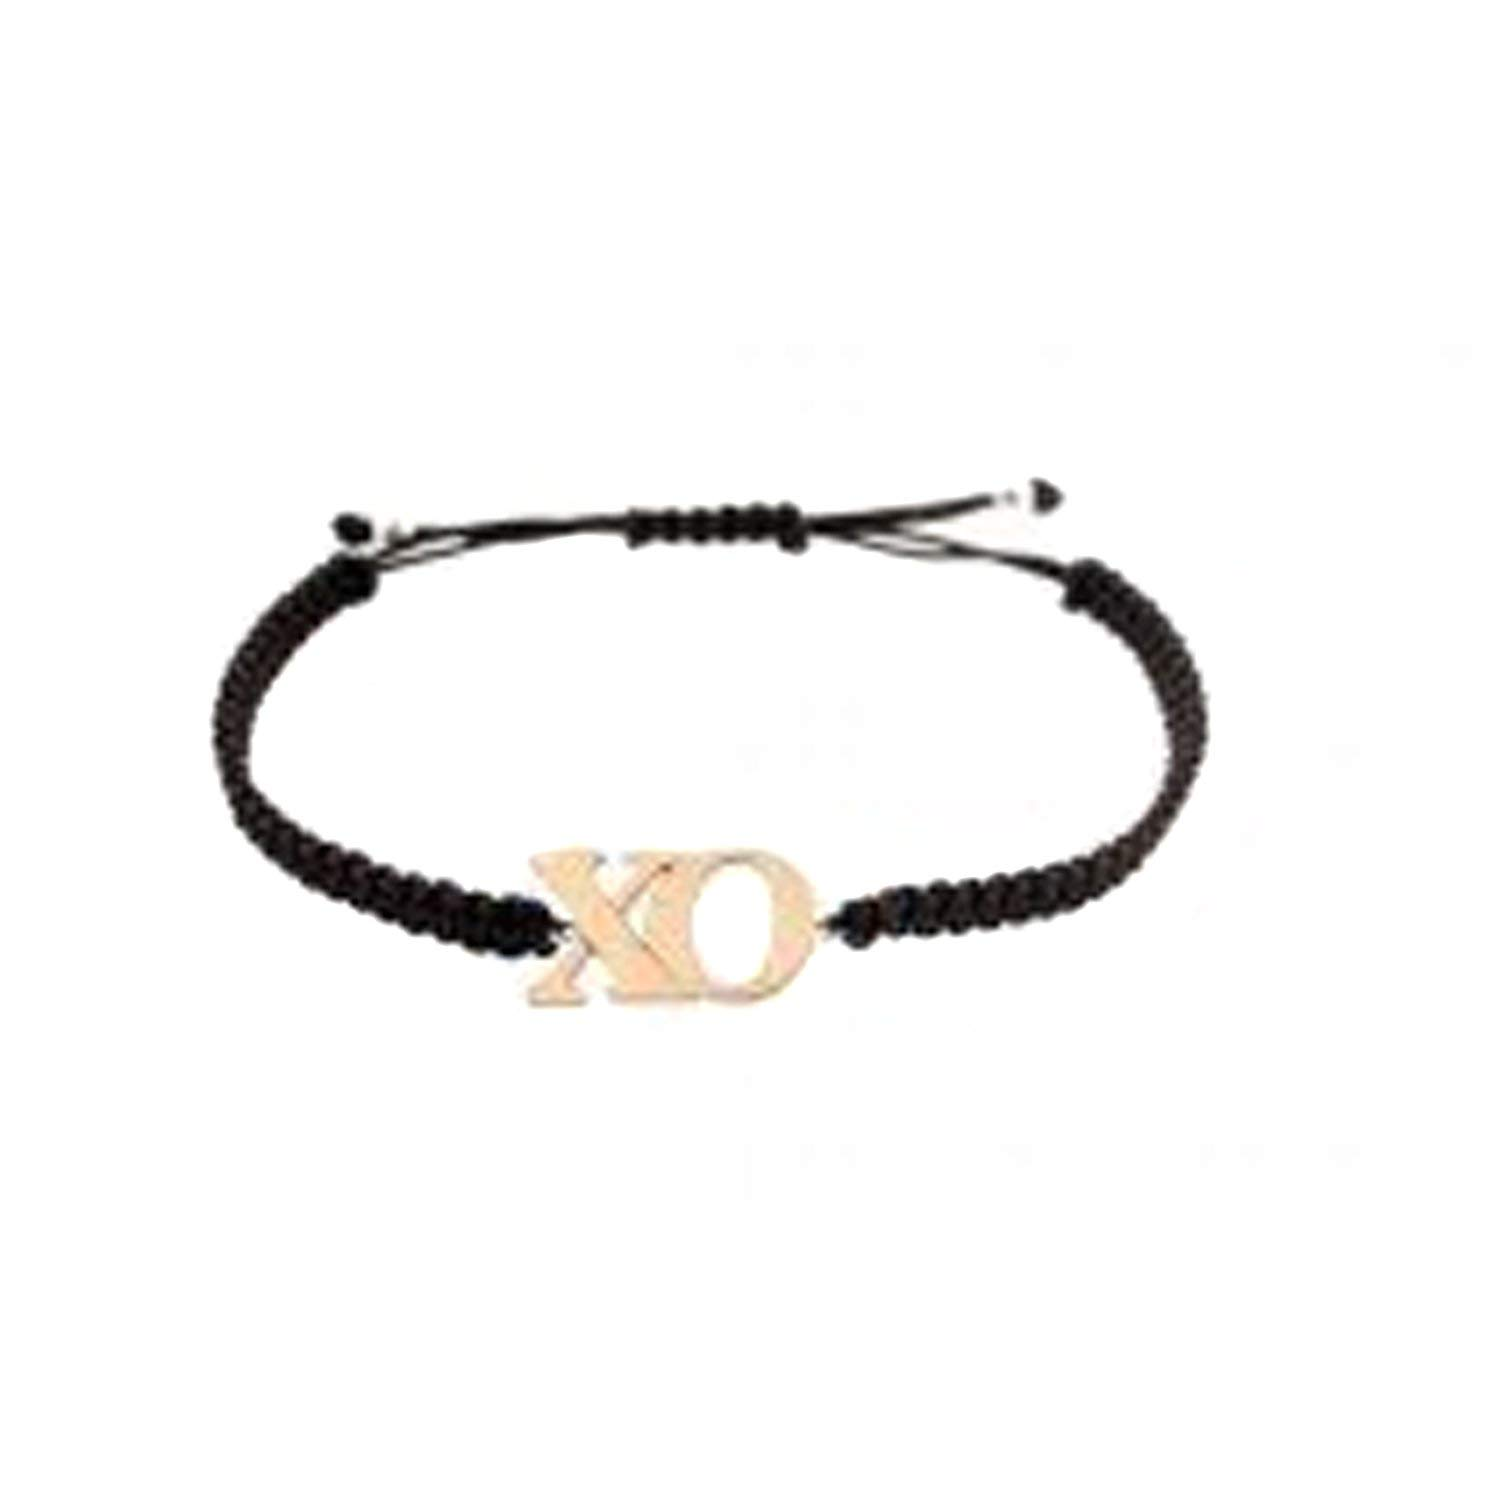 "Lori Bonn Gold Plated Silver ""Kisses & Hugs"" Black Macrame Charm Bracelet With ""X & O"", 7.5"" Adjustable"